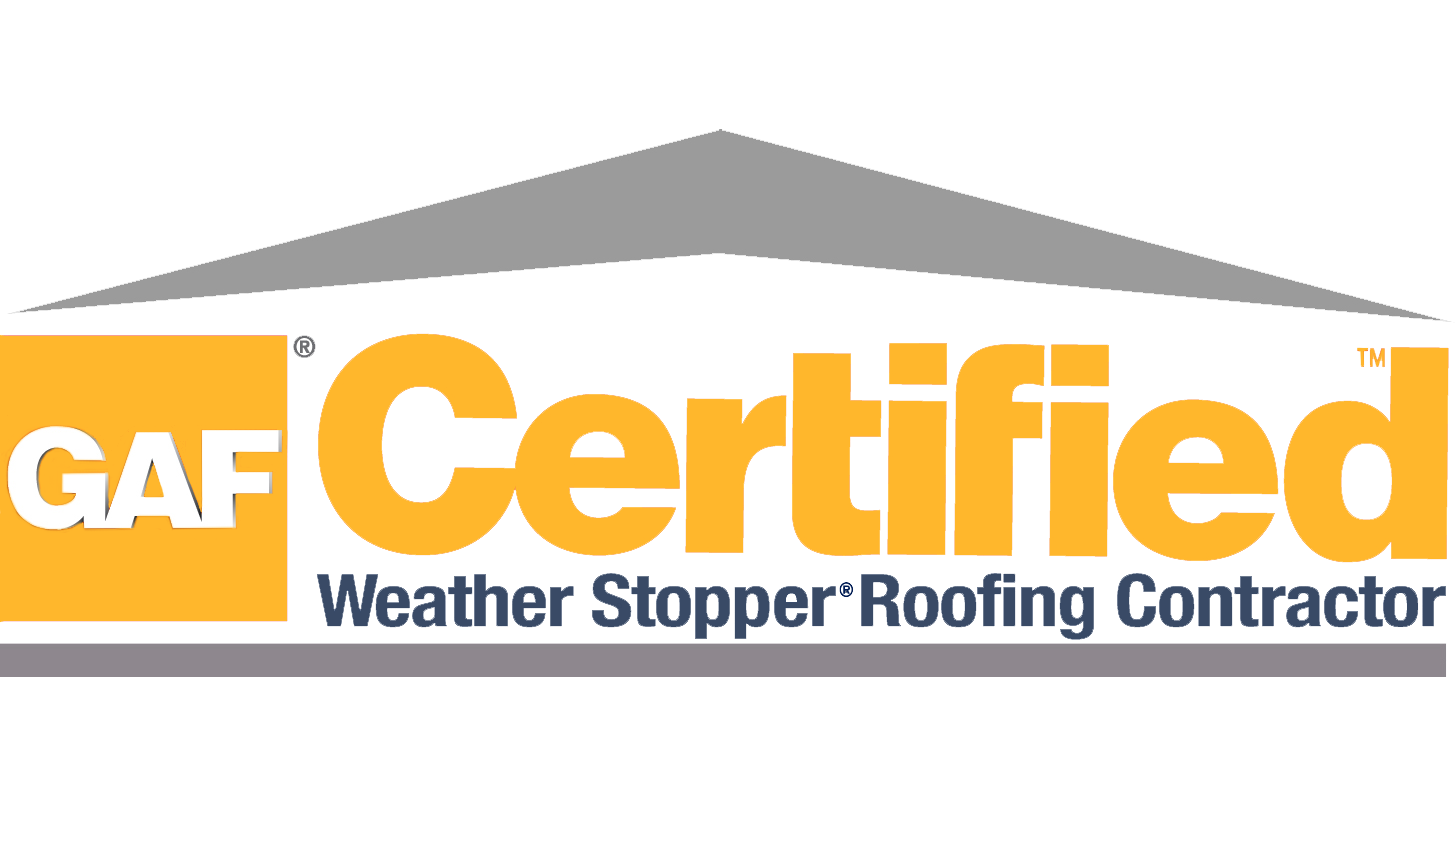 S&M Roofing uses GAF certified materials